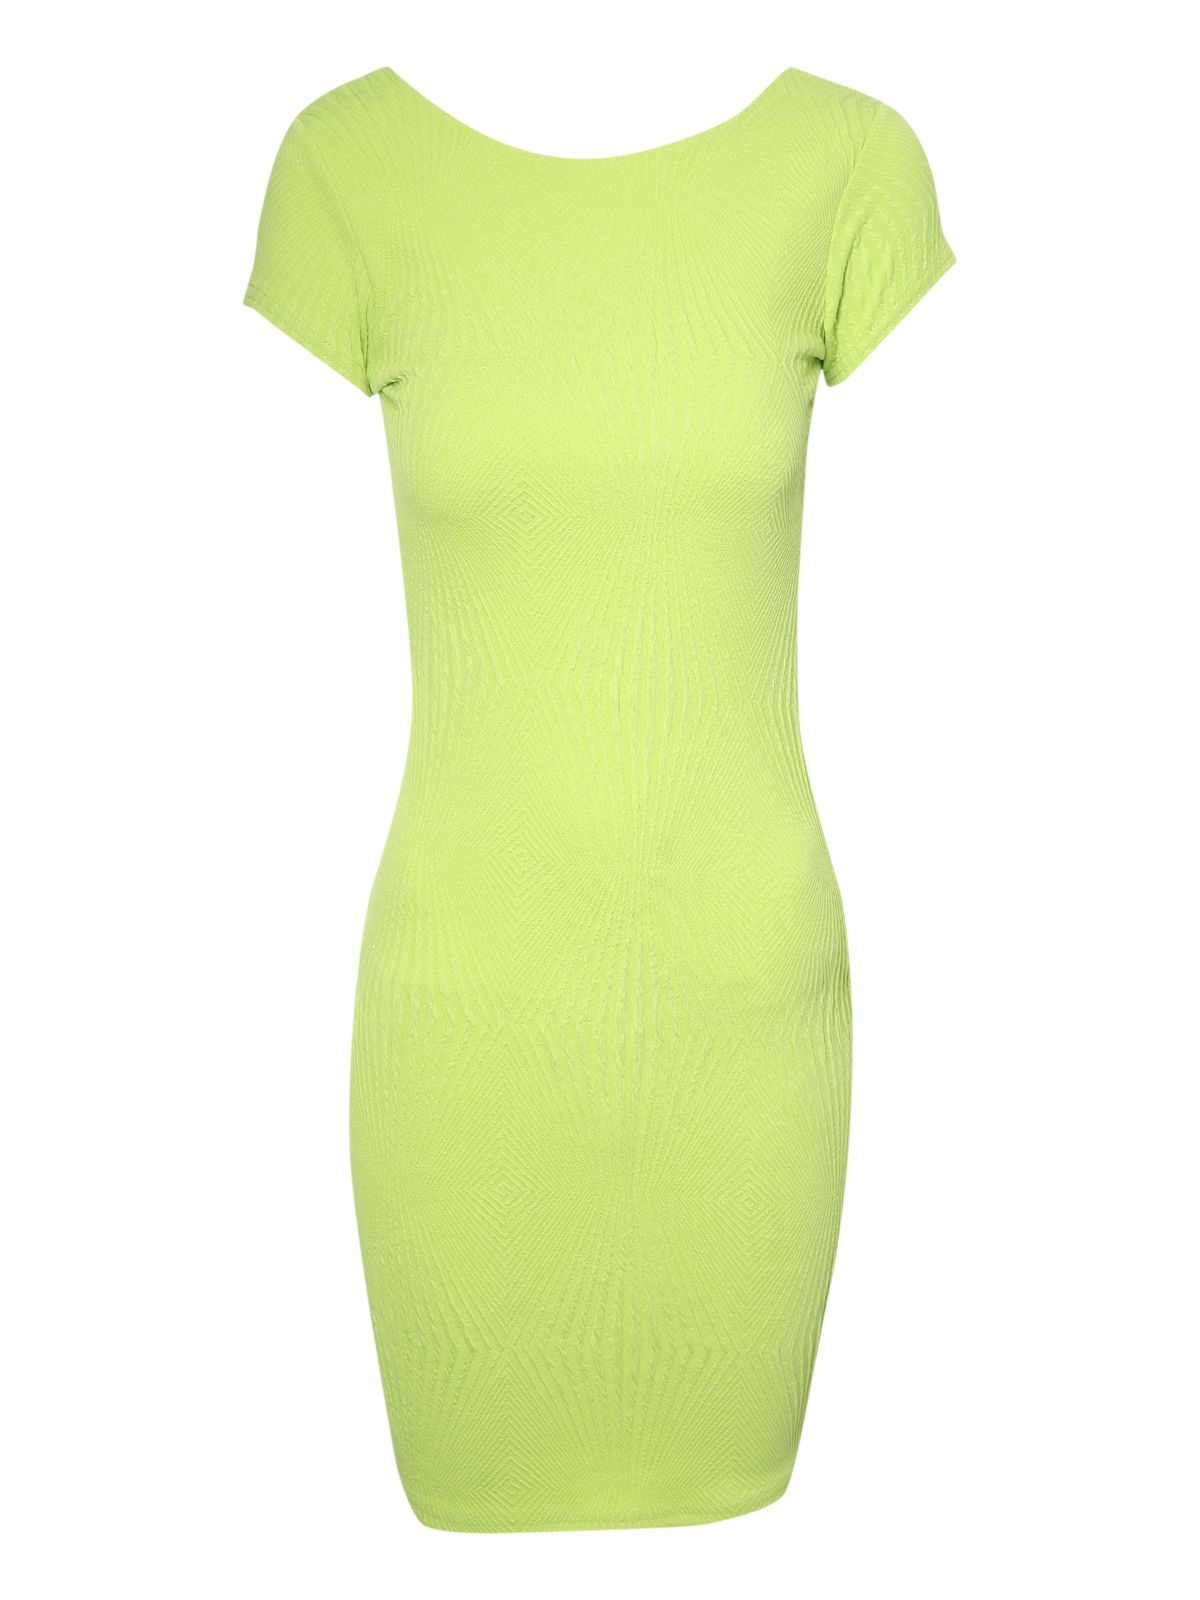 Graphic textured bodycon dress